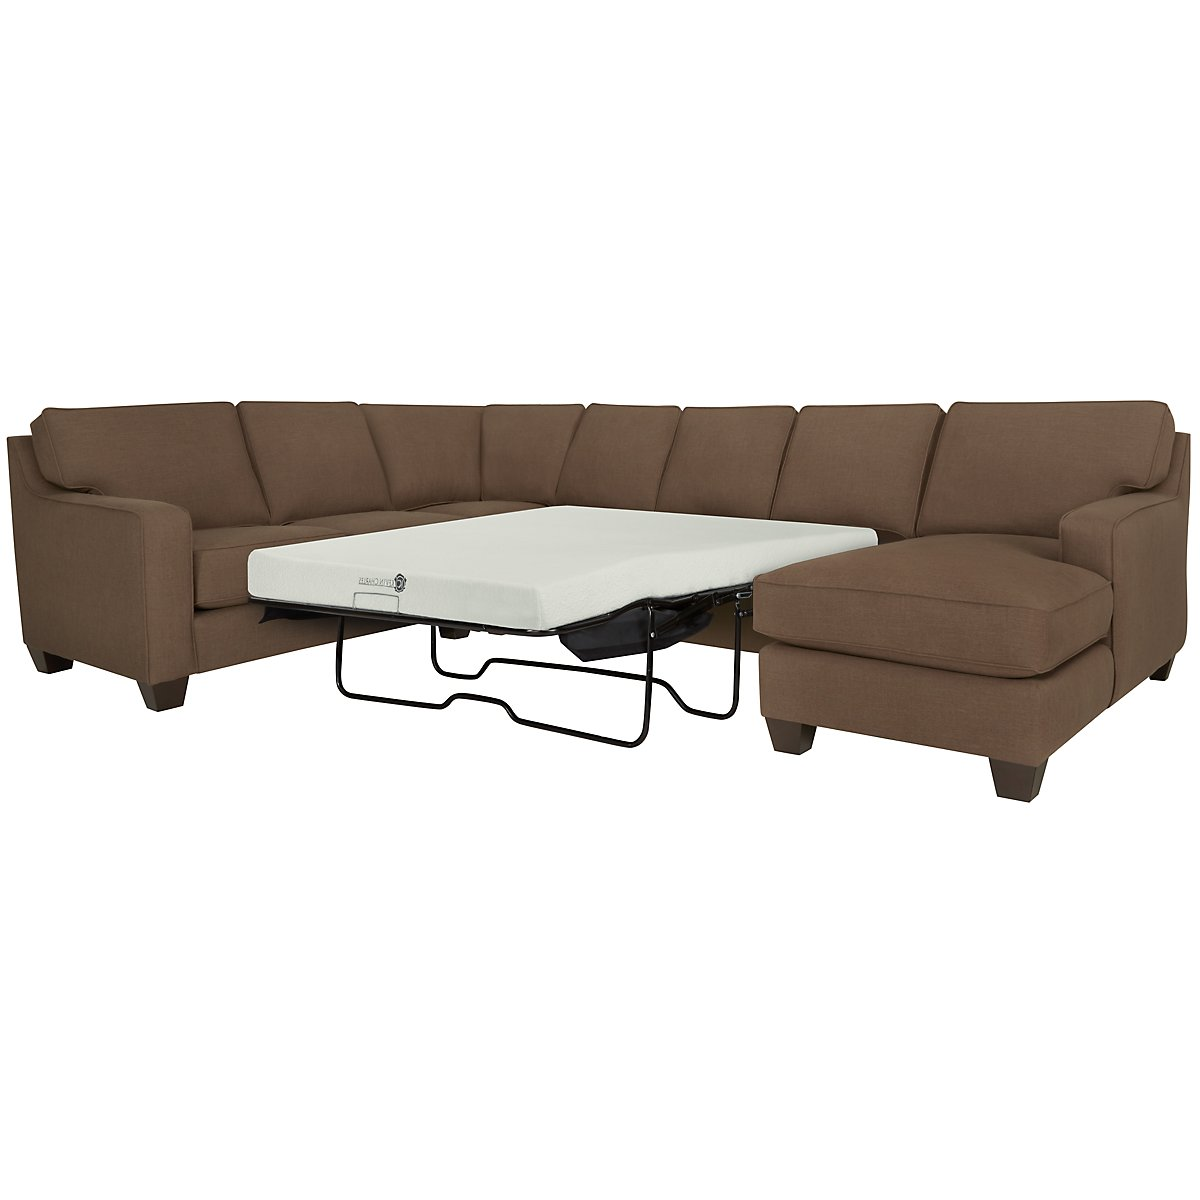 York Dark Brown Fabric Right Chaise Memory Foam Sleeper Sectional